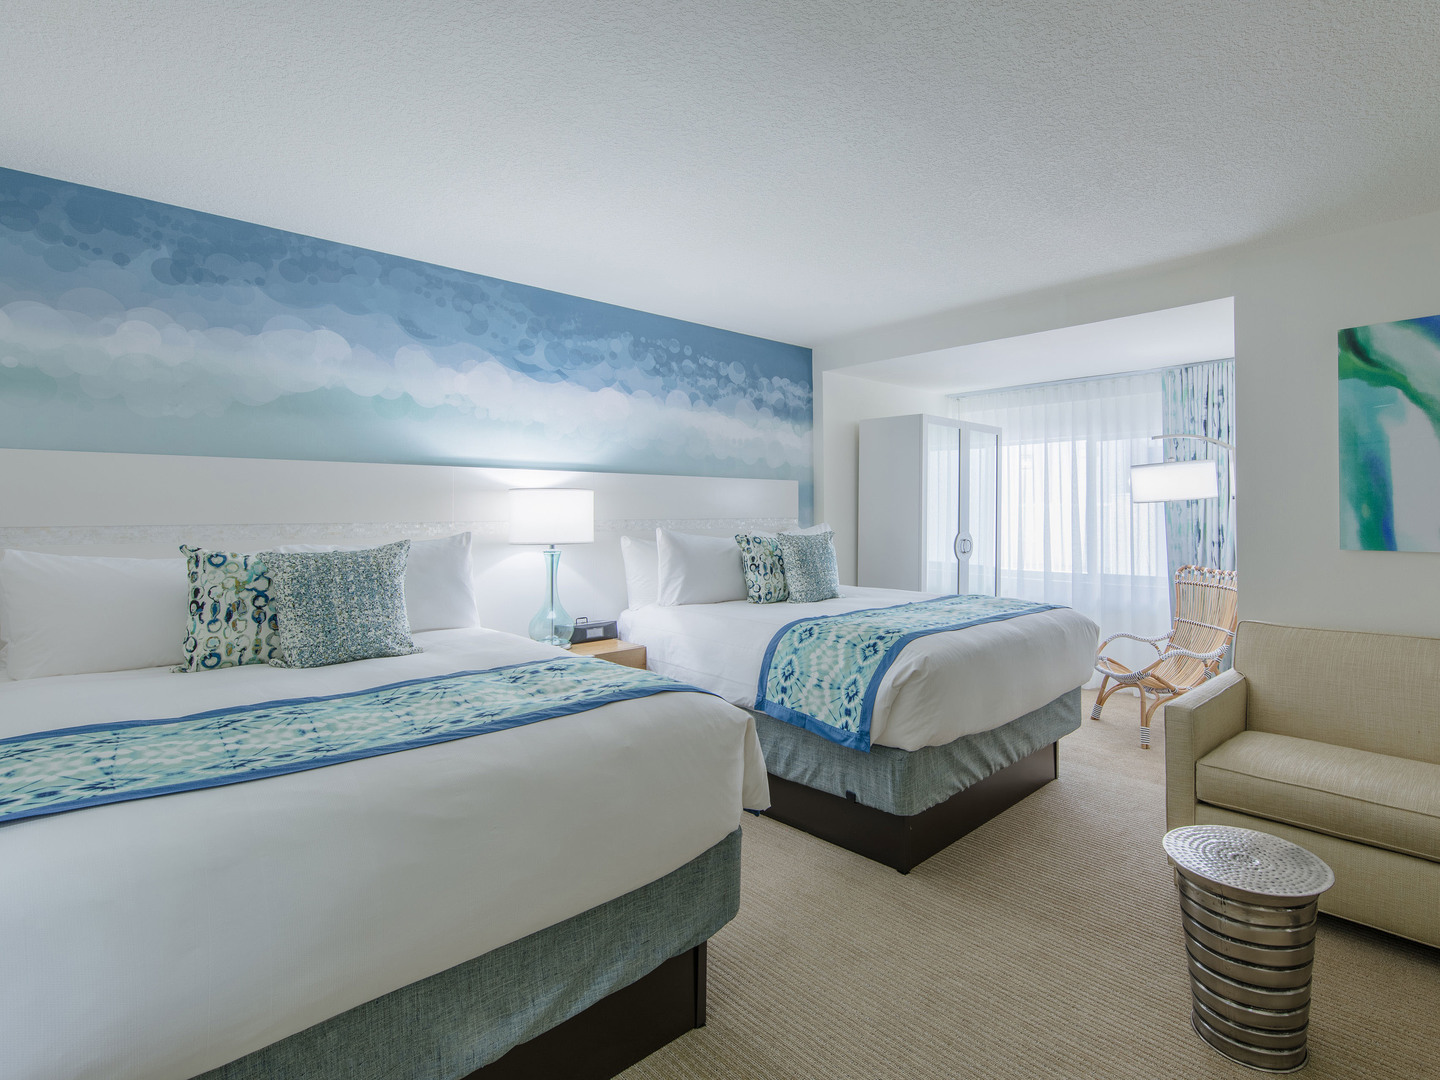 Marriott Vacation Club Pulse<span class='trademark'>®</span>, South Beach Studio Doubles. Marriott Vacation Club Pulse<span class='trademark'>®</span>, South Beach is located in Miami Beach, Florida United States.